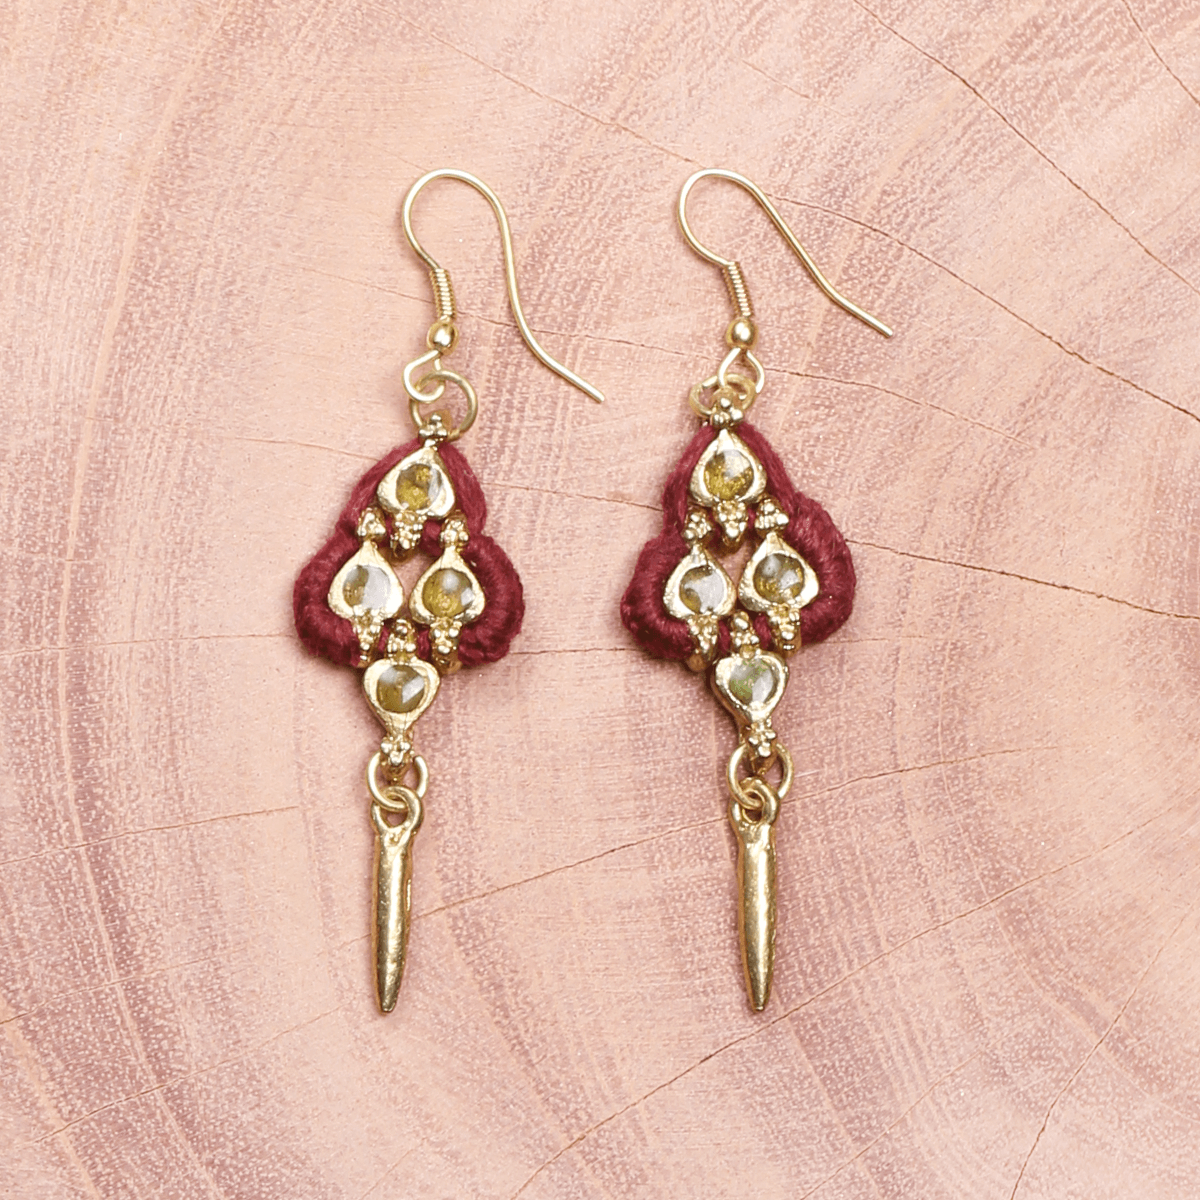 Bohemian Fashion Metal Earrings - Maroon